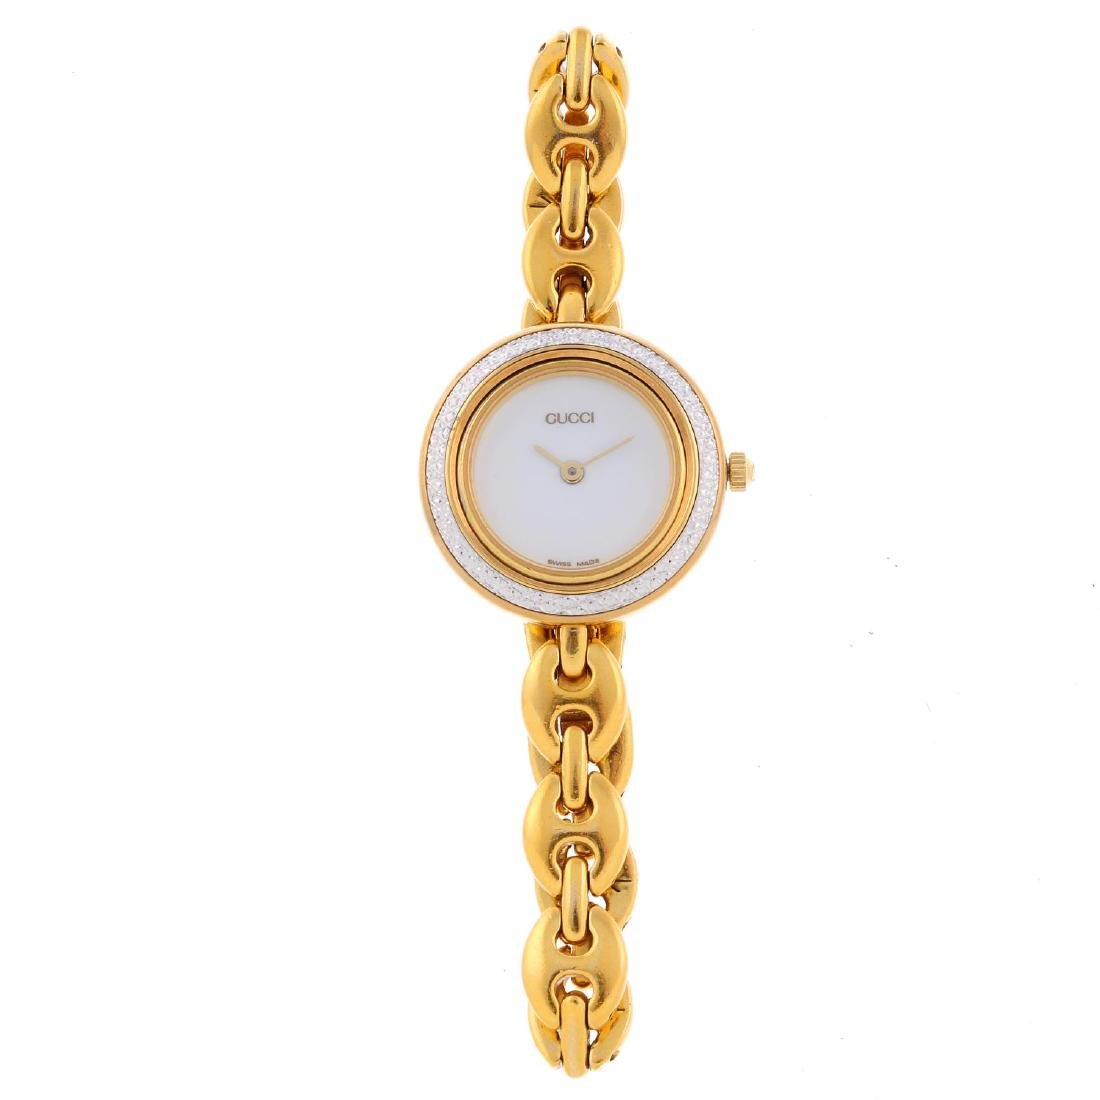 GUCCI - a lady's bracelet watch. Gold plated case with